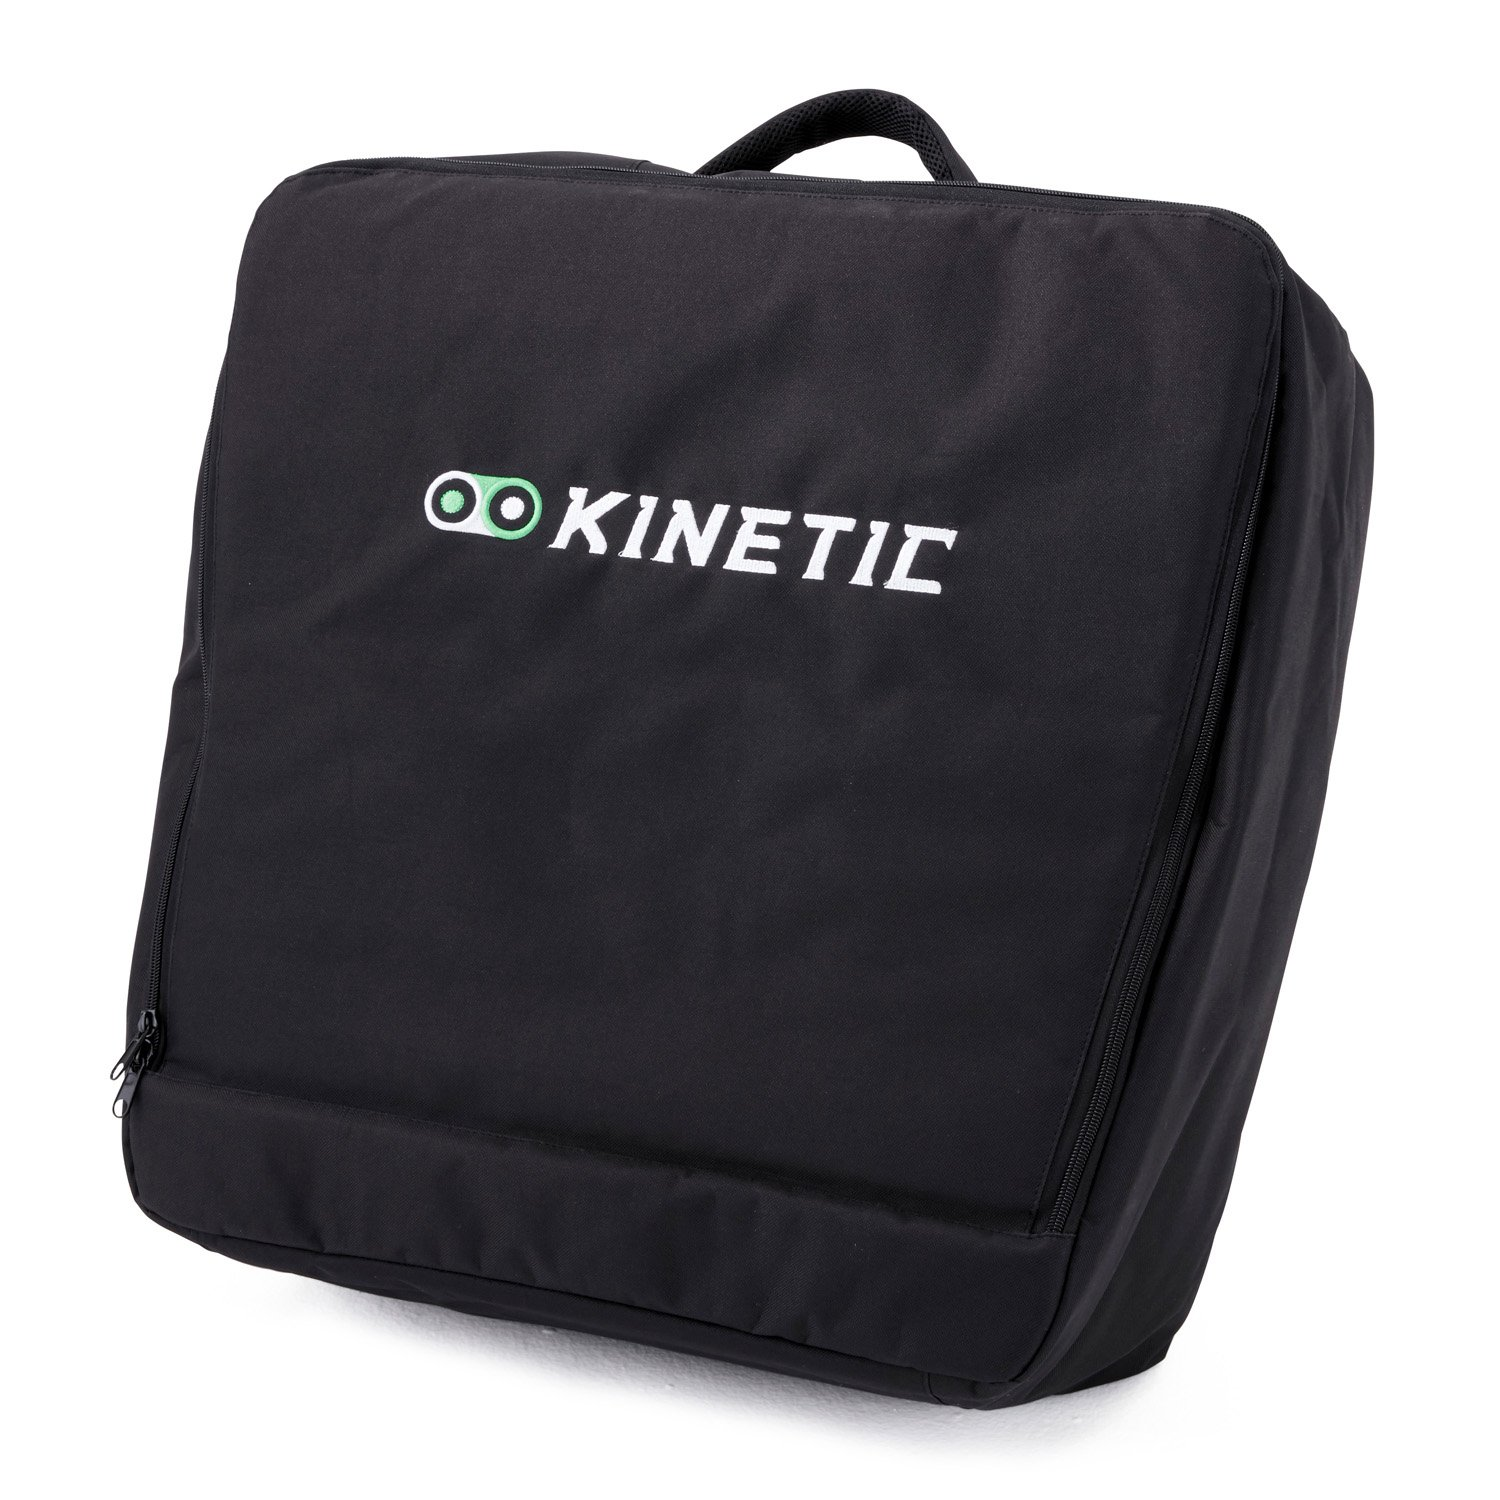 Kinetic Trainer Bag Kinetic by Kurt T-1000